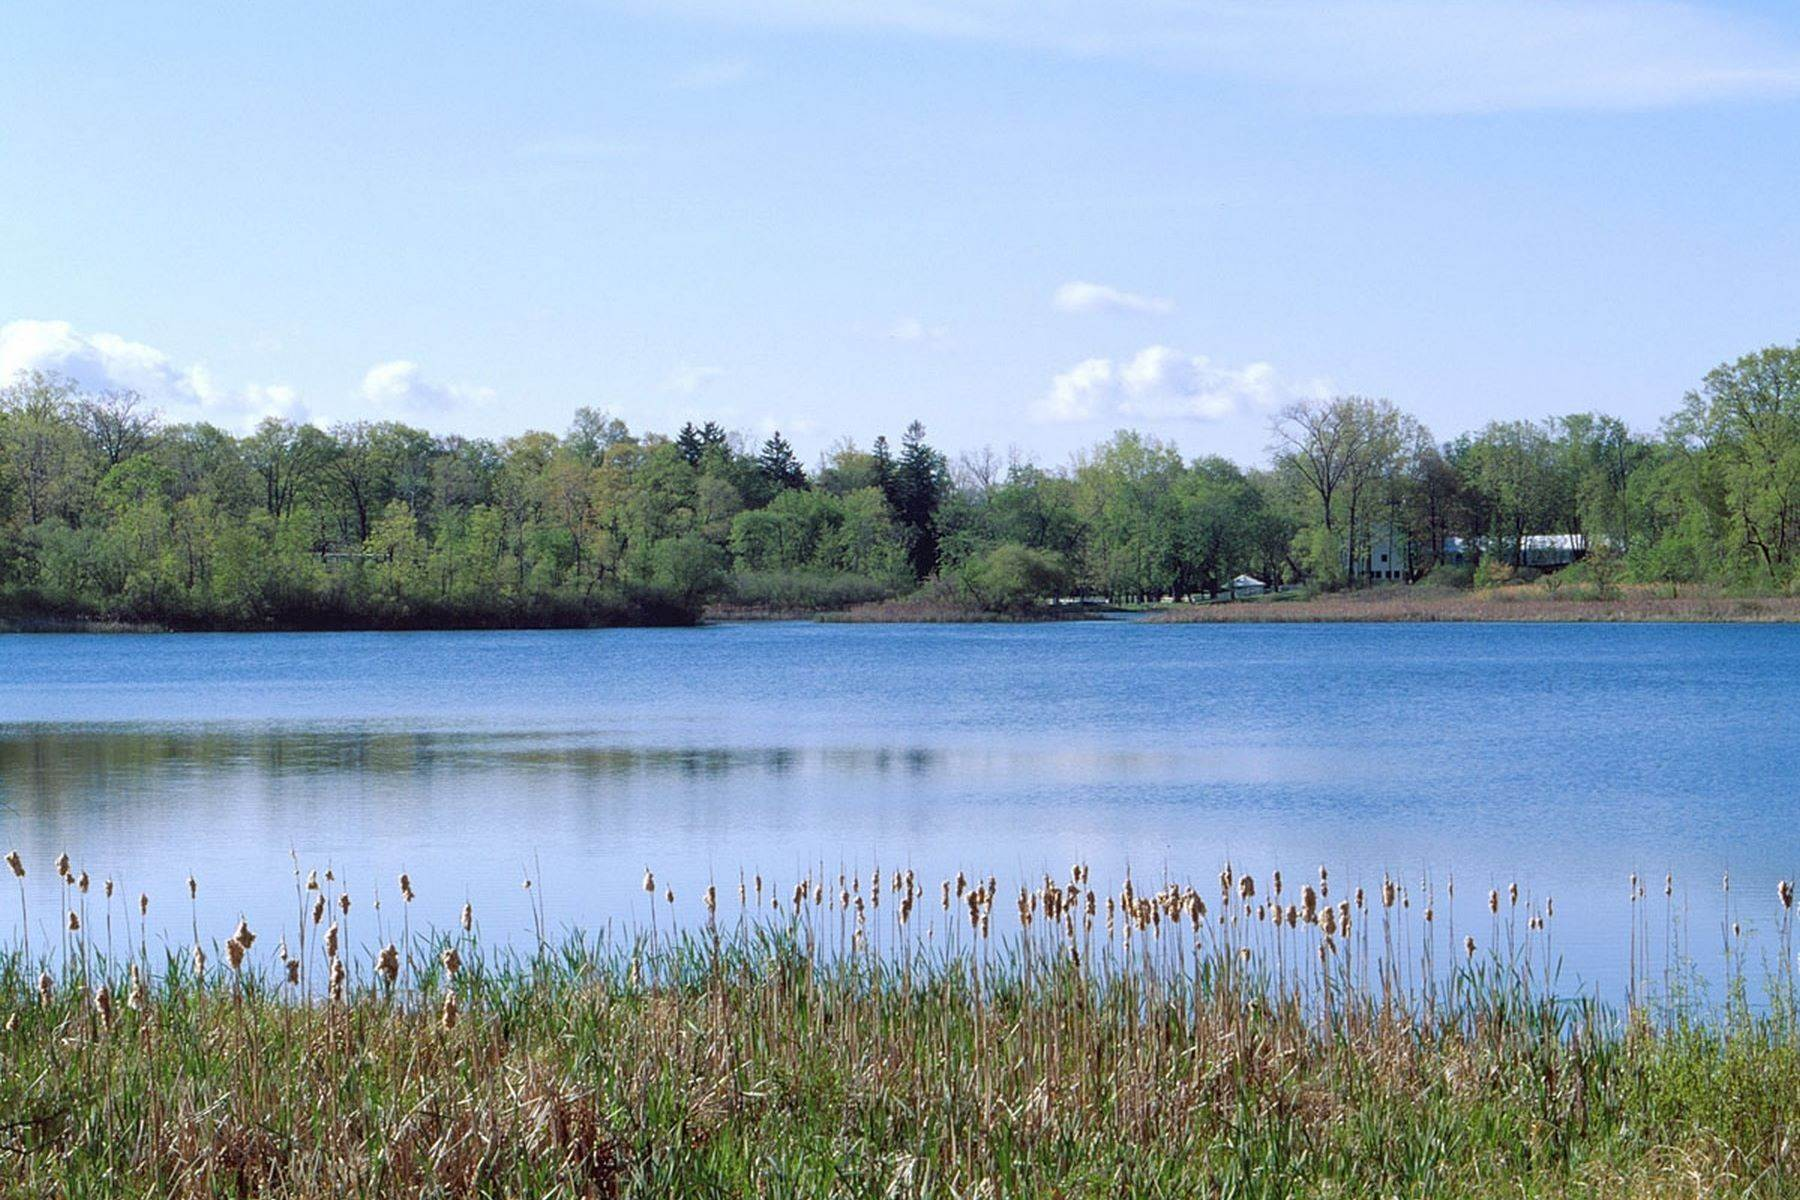 Land for Sale at Turtle Lake Residential Lot 2633 Turtle Shores Drive, Unit #104 Bloomfield Hills, Michigan 48302 United States